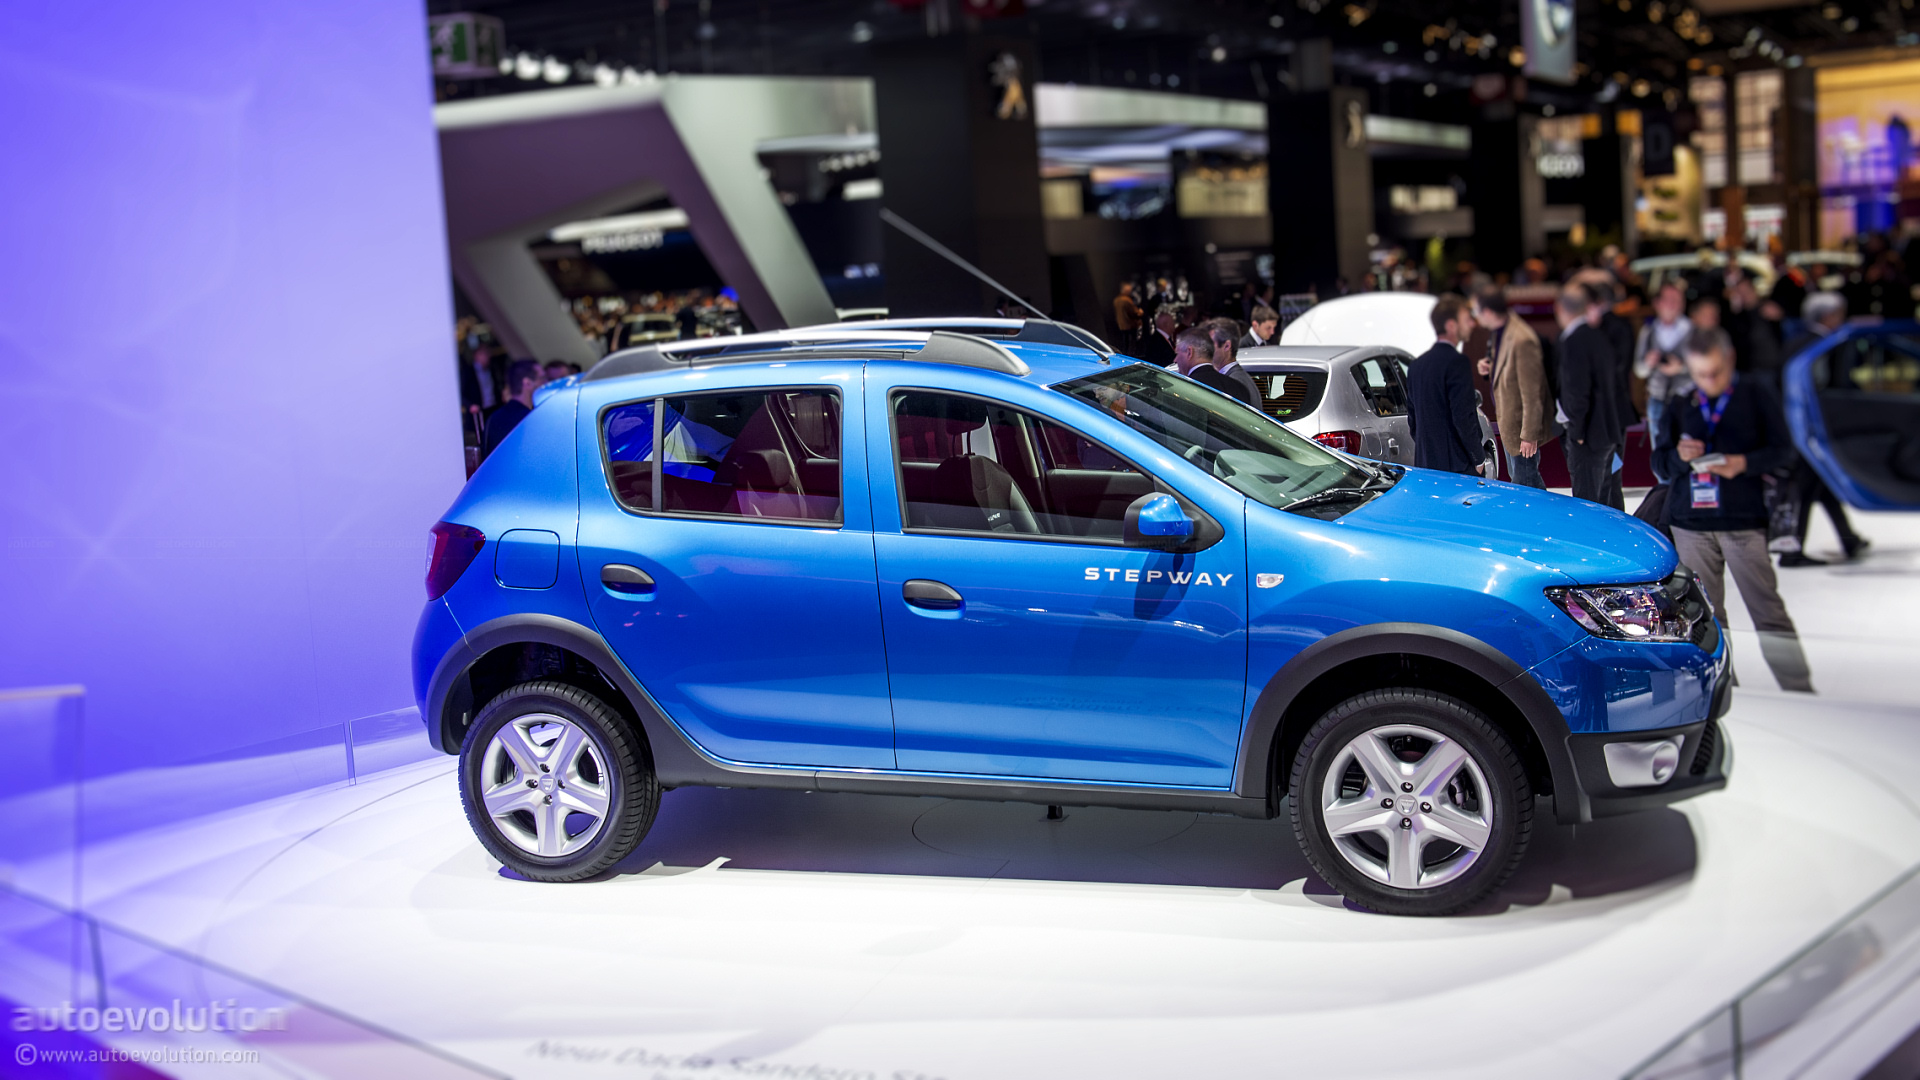 paris 2012 dacia sandero stepway live photos autoevolution. Black Bedroom Furniture Sets. Home Design Ideas